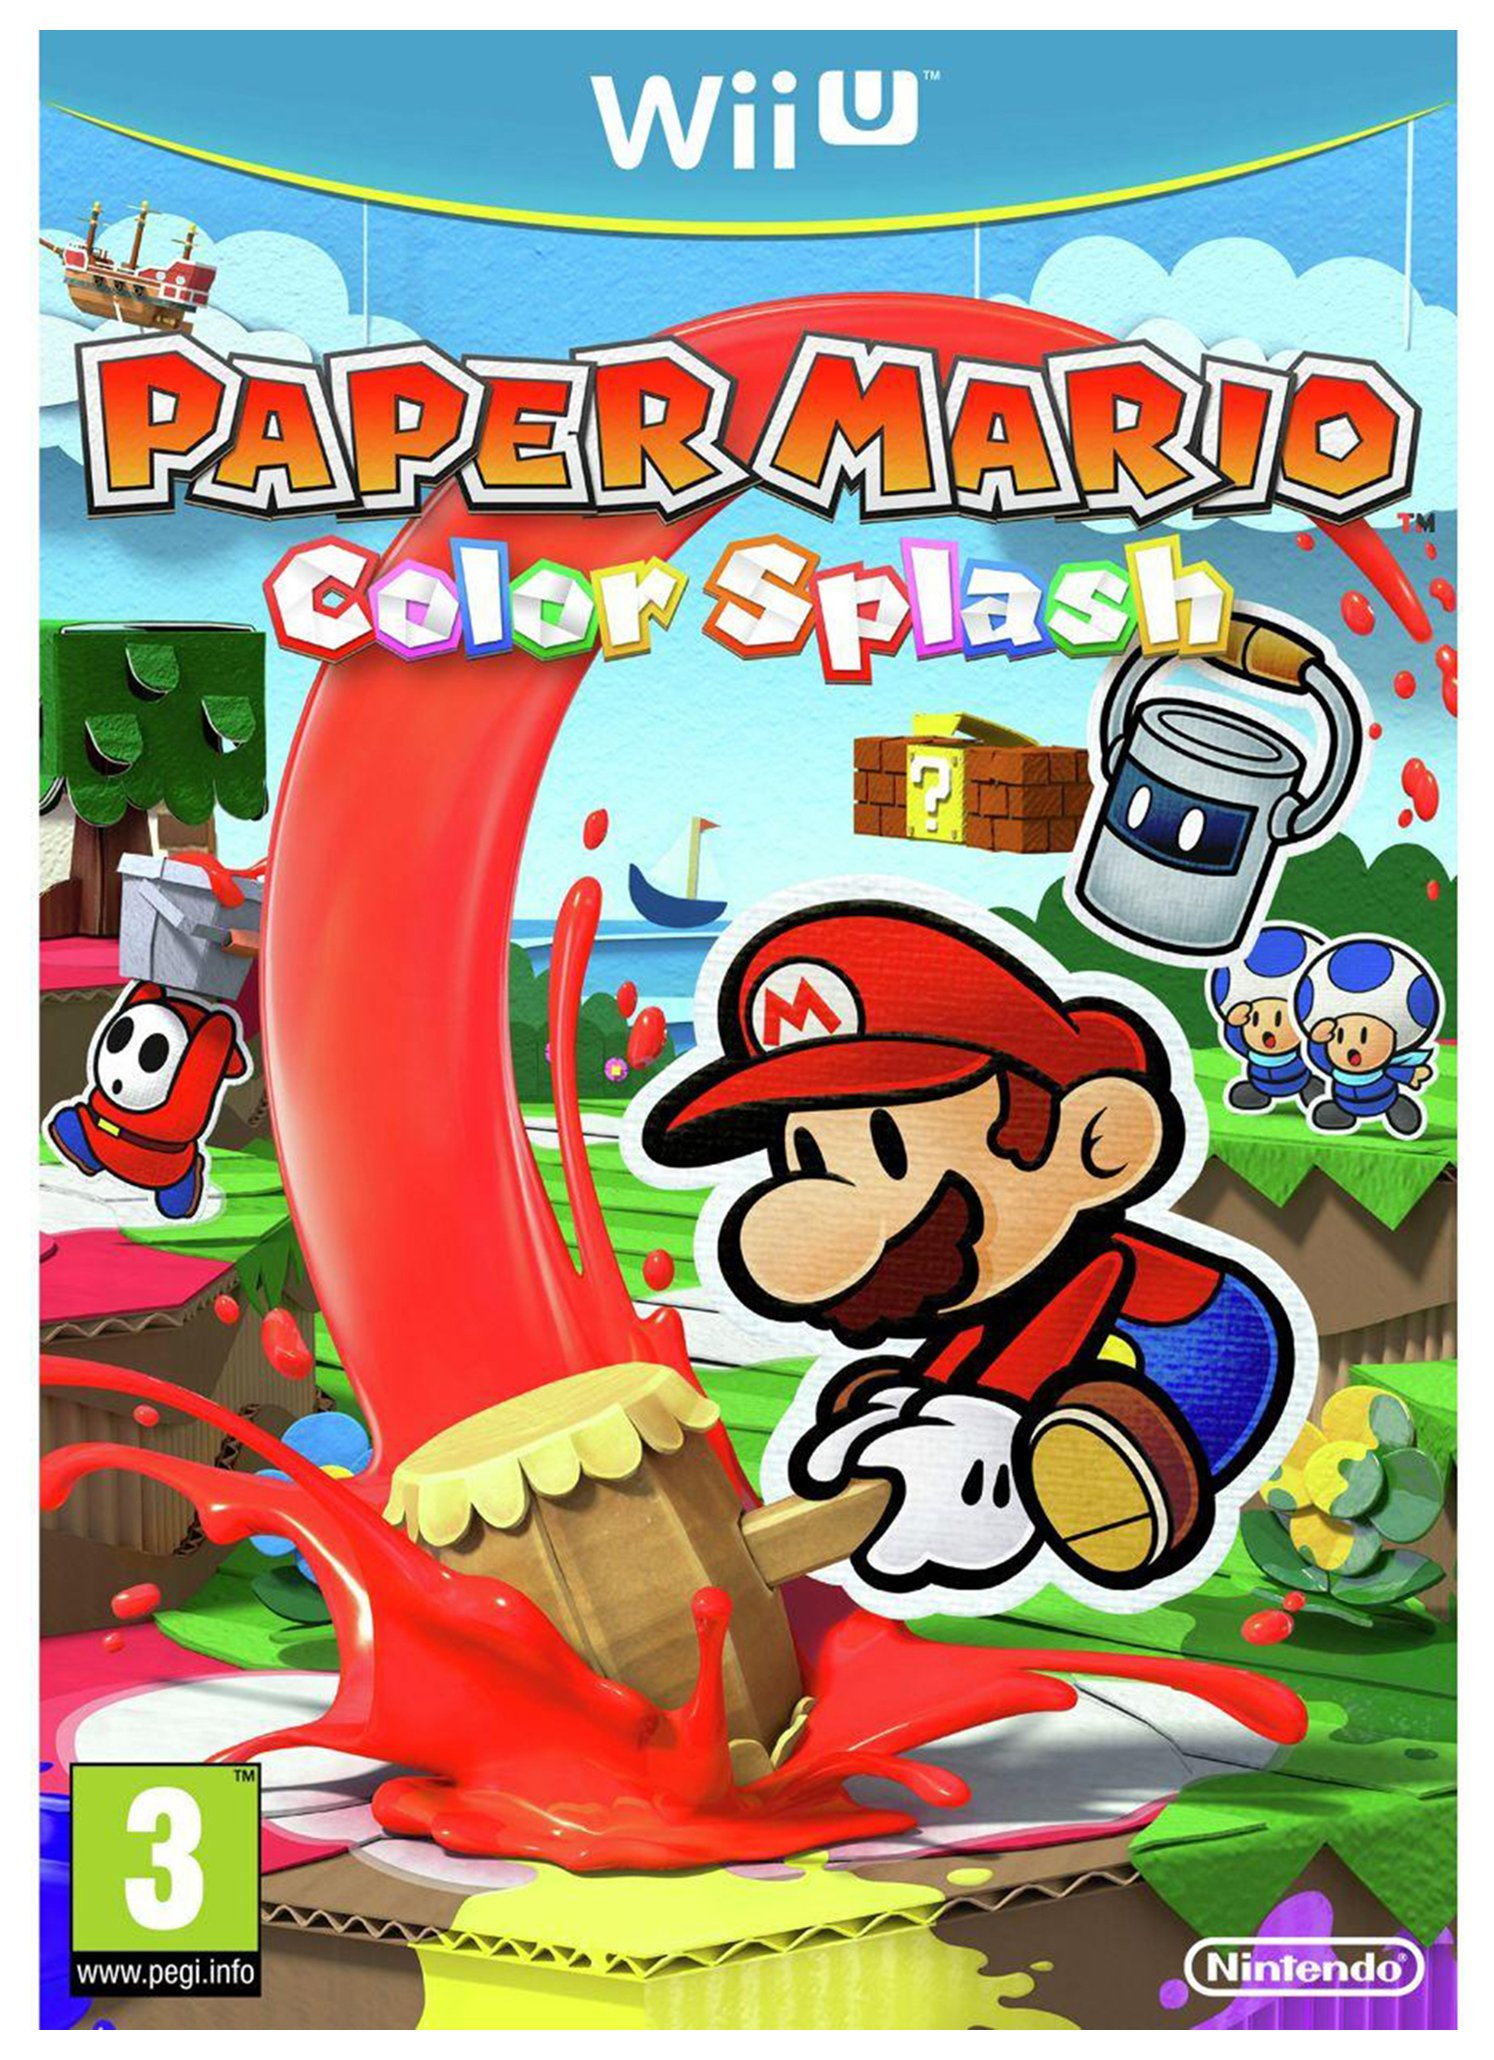 Nintendo Paper Mario - Colour Splash - Nintendo - Wii U Game